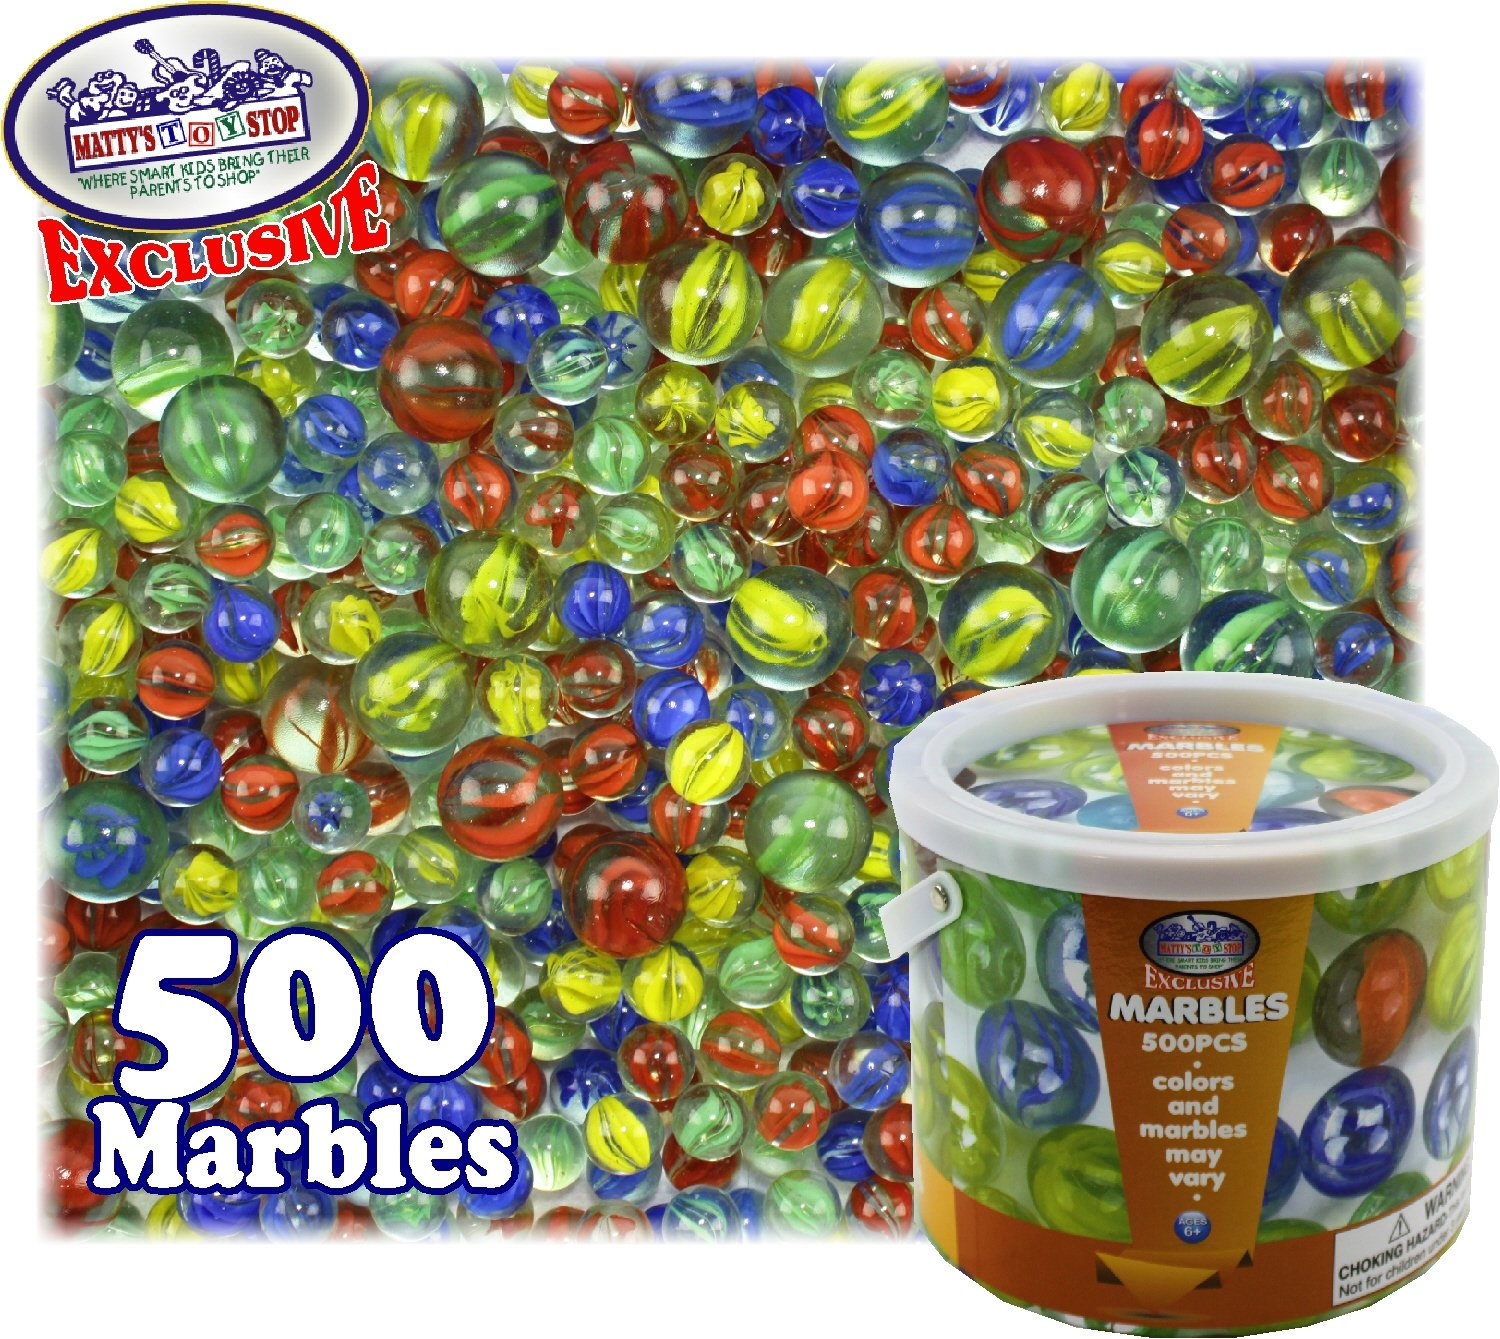 Matty's Toy Stop Deluxe 500 Pieces (7.5 Pounds) of Cat's Eyes Marbles & Shooters with Exclusive Storage Bucket